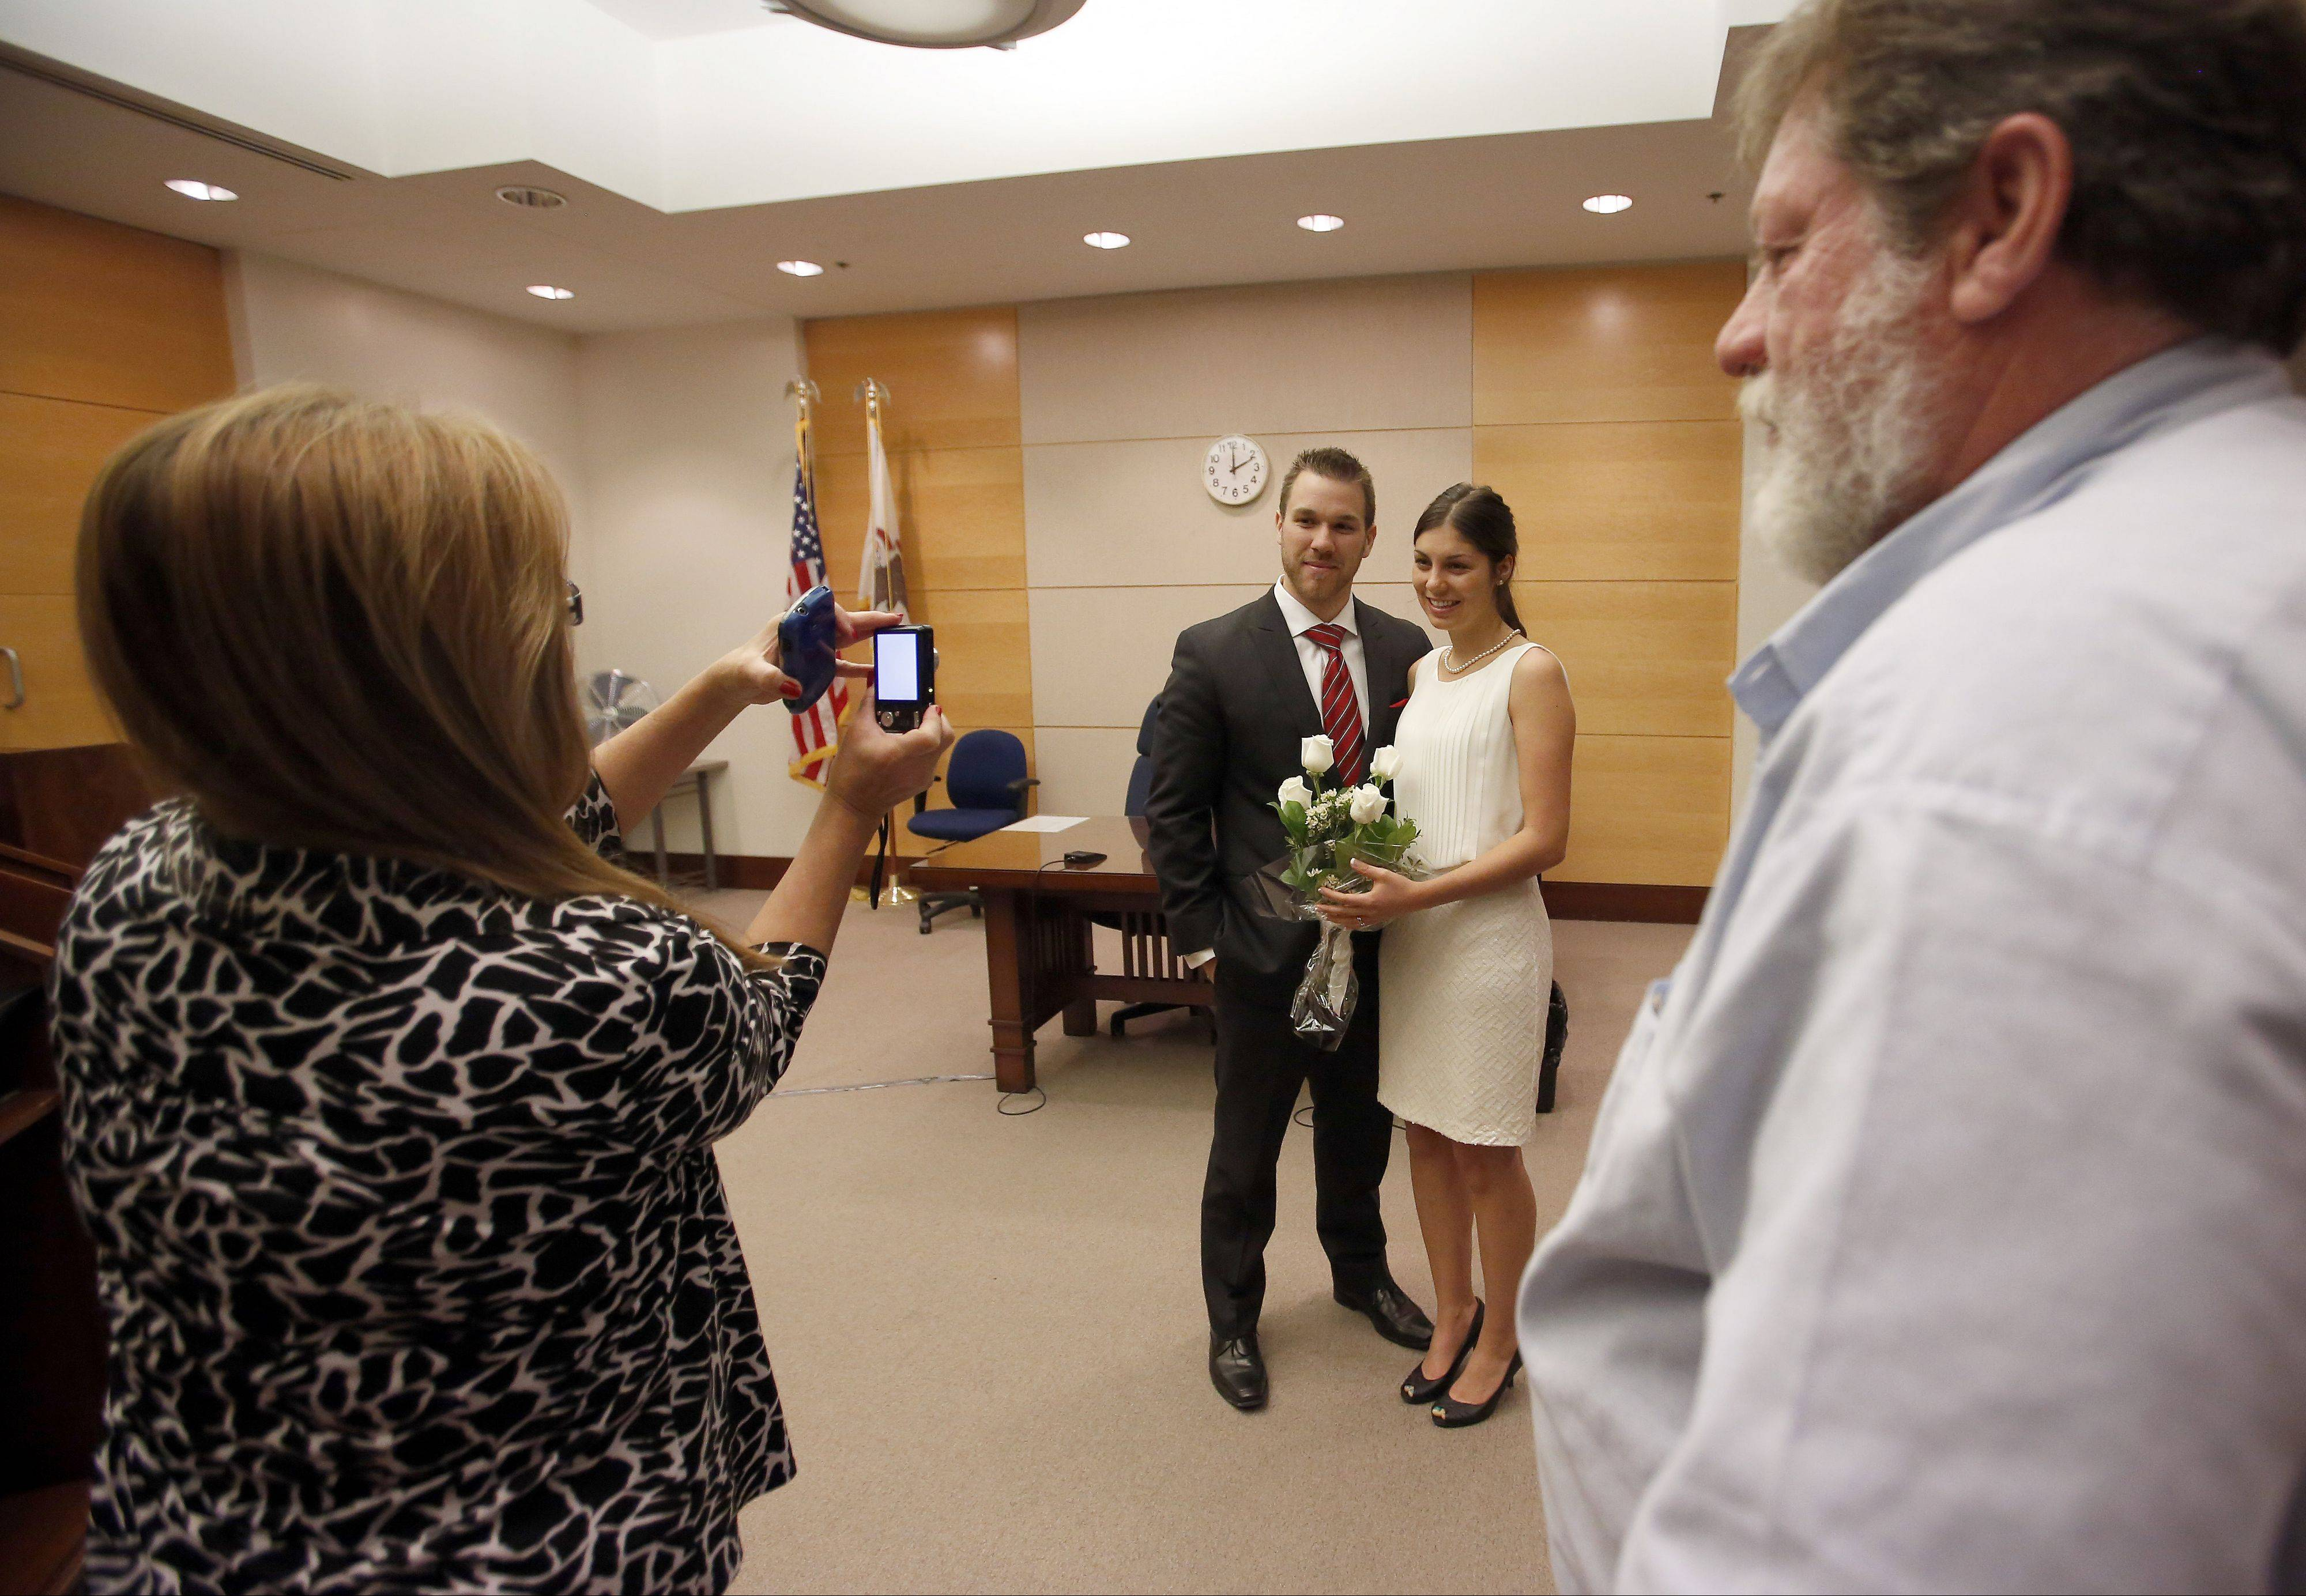 Robert Forrest of Kansas City, Kan., poses with his bride Katie Krueger of East Dundee after getting married at the Kane County Courthouse Tuesday, 11-12-13, in St. Charles. The couple, who met at church, have a busy week planned complete with a big move. Connie and Don Krueger, Katie's parents, take pictures after the ceremony.